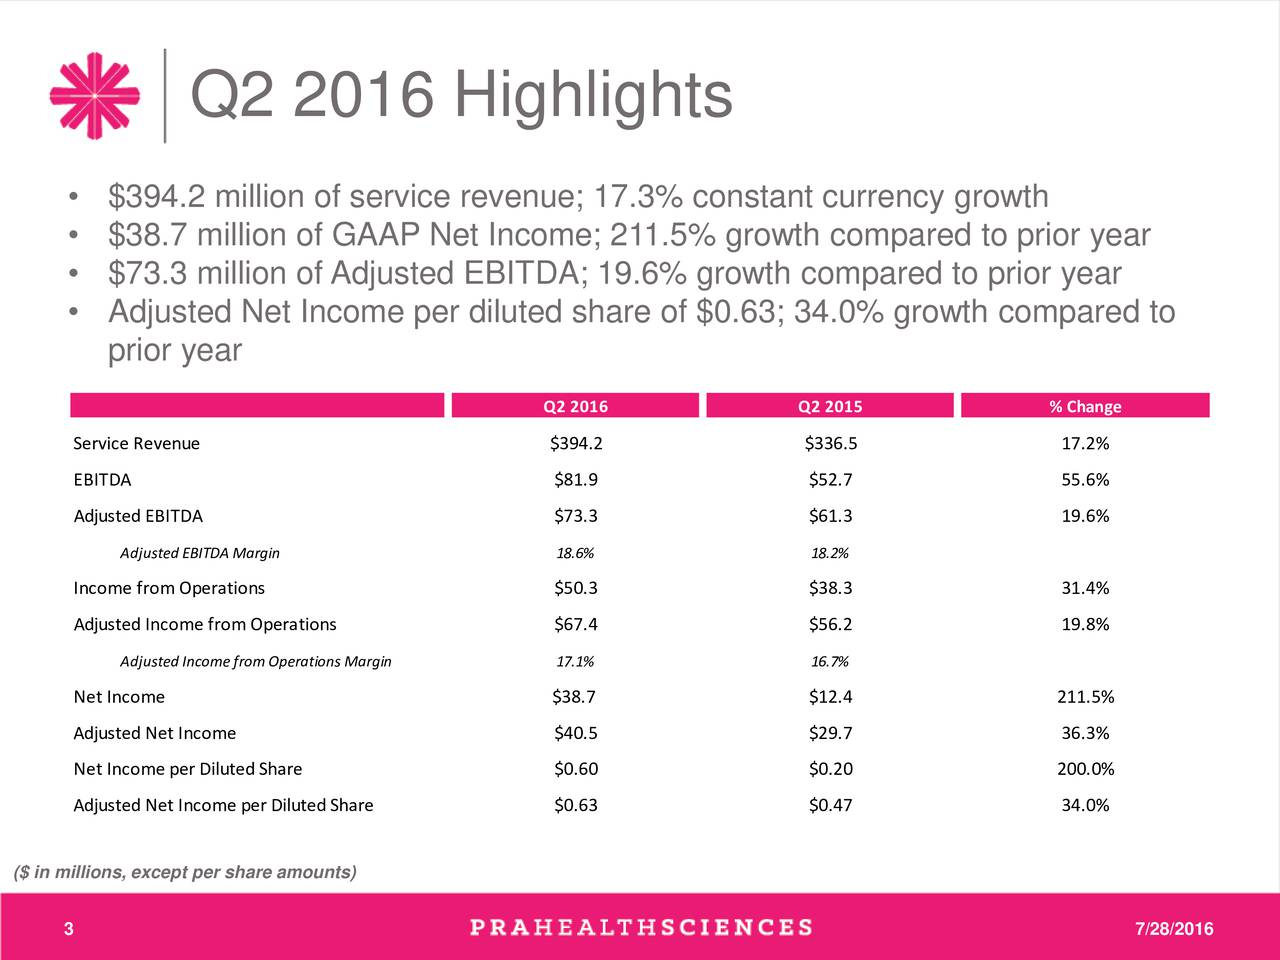 $394.2 million of service revenue; 17.3% constant currency growth $38.7 million of GAAP Net Income; 211.5% growth compared to prior year $73.3 million of Adjusted EBITDA; 19.6% growth compared to prior year Adjusted Net Income per diluted share of $0.63; 34.0% growth compared to prior year Q2 2016 Q2 2015 % Change Service Revenue $394.2 $336.5 17.2% EBITDA $81.9 $52.7 55.6% Adjusted EBITDA $73.3 $61.3 19.6% Adjusted EBITDA Margin 18.6% 18.2% Income fromOperations $50.3 $38.3 31.4% Adjusted Income from Operations $67.4 $56.2 19.8% Adjusted Income from Operations Margin 17.1% 16.7% Net Income $38.7 $12.4 211.5% Adjusted Net Income $40.5 $29.7 36.3% Net Income per Diluted Share $0.60 $0.20 200.0% Adjusted Net Income per Diluted Share $0.63 $0.47 34.0% ($ in millions, except per share amounts) 3 7/28/2016